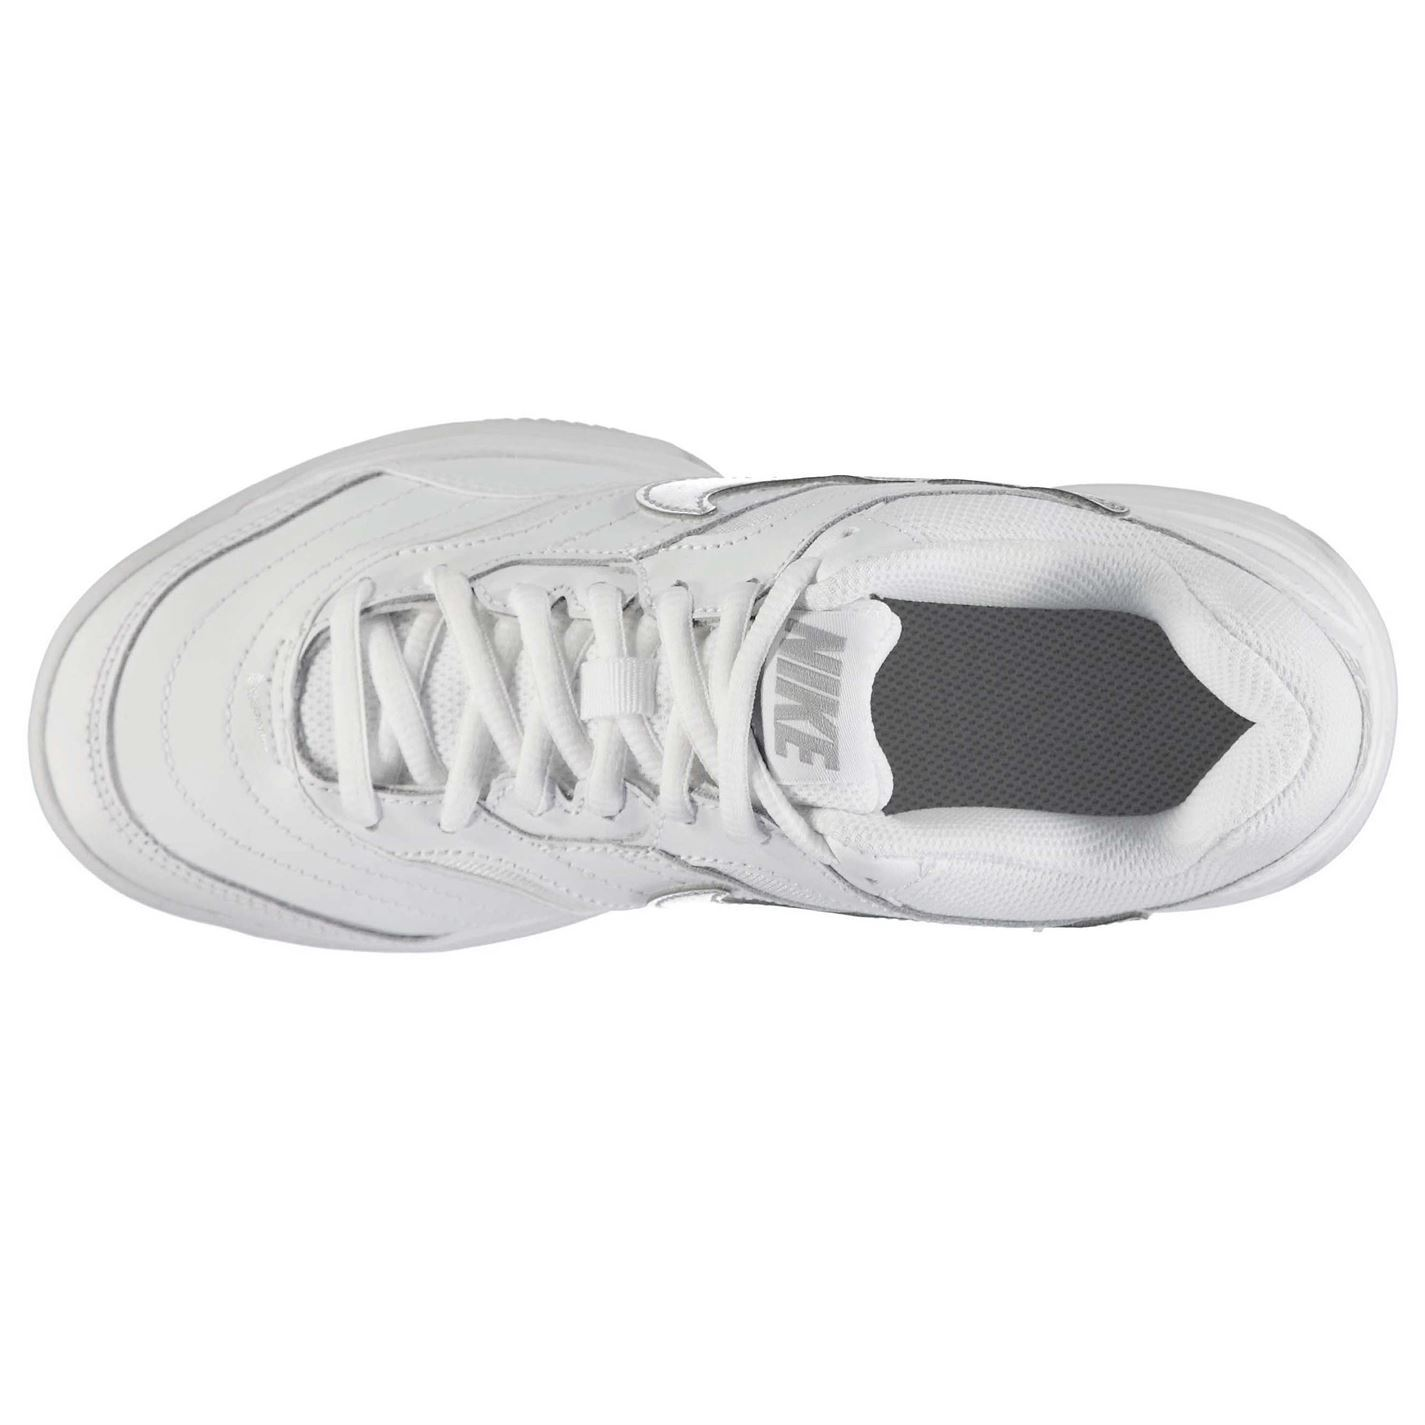 751b91015d70 Nike Court Lite Tennis Shoes Womens White Silver Sports Trainers Sneakers